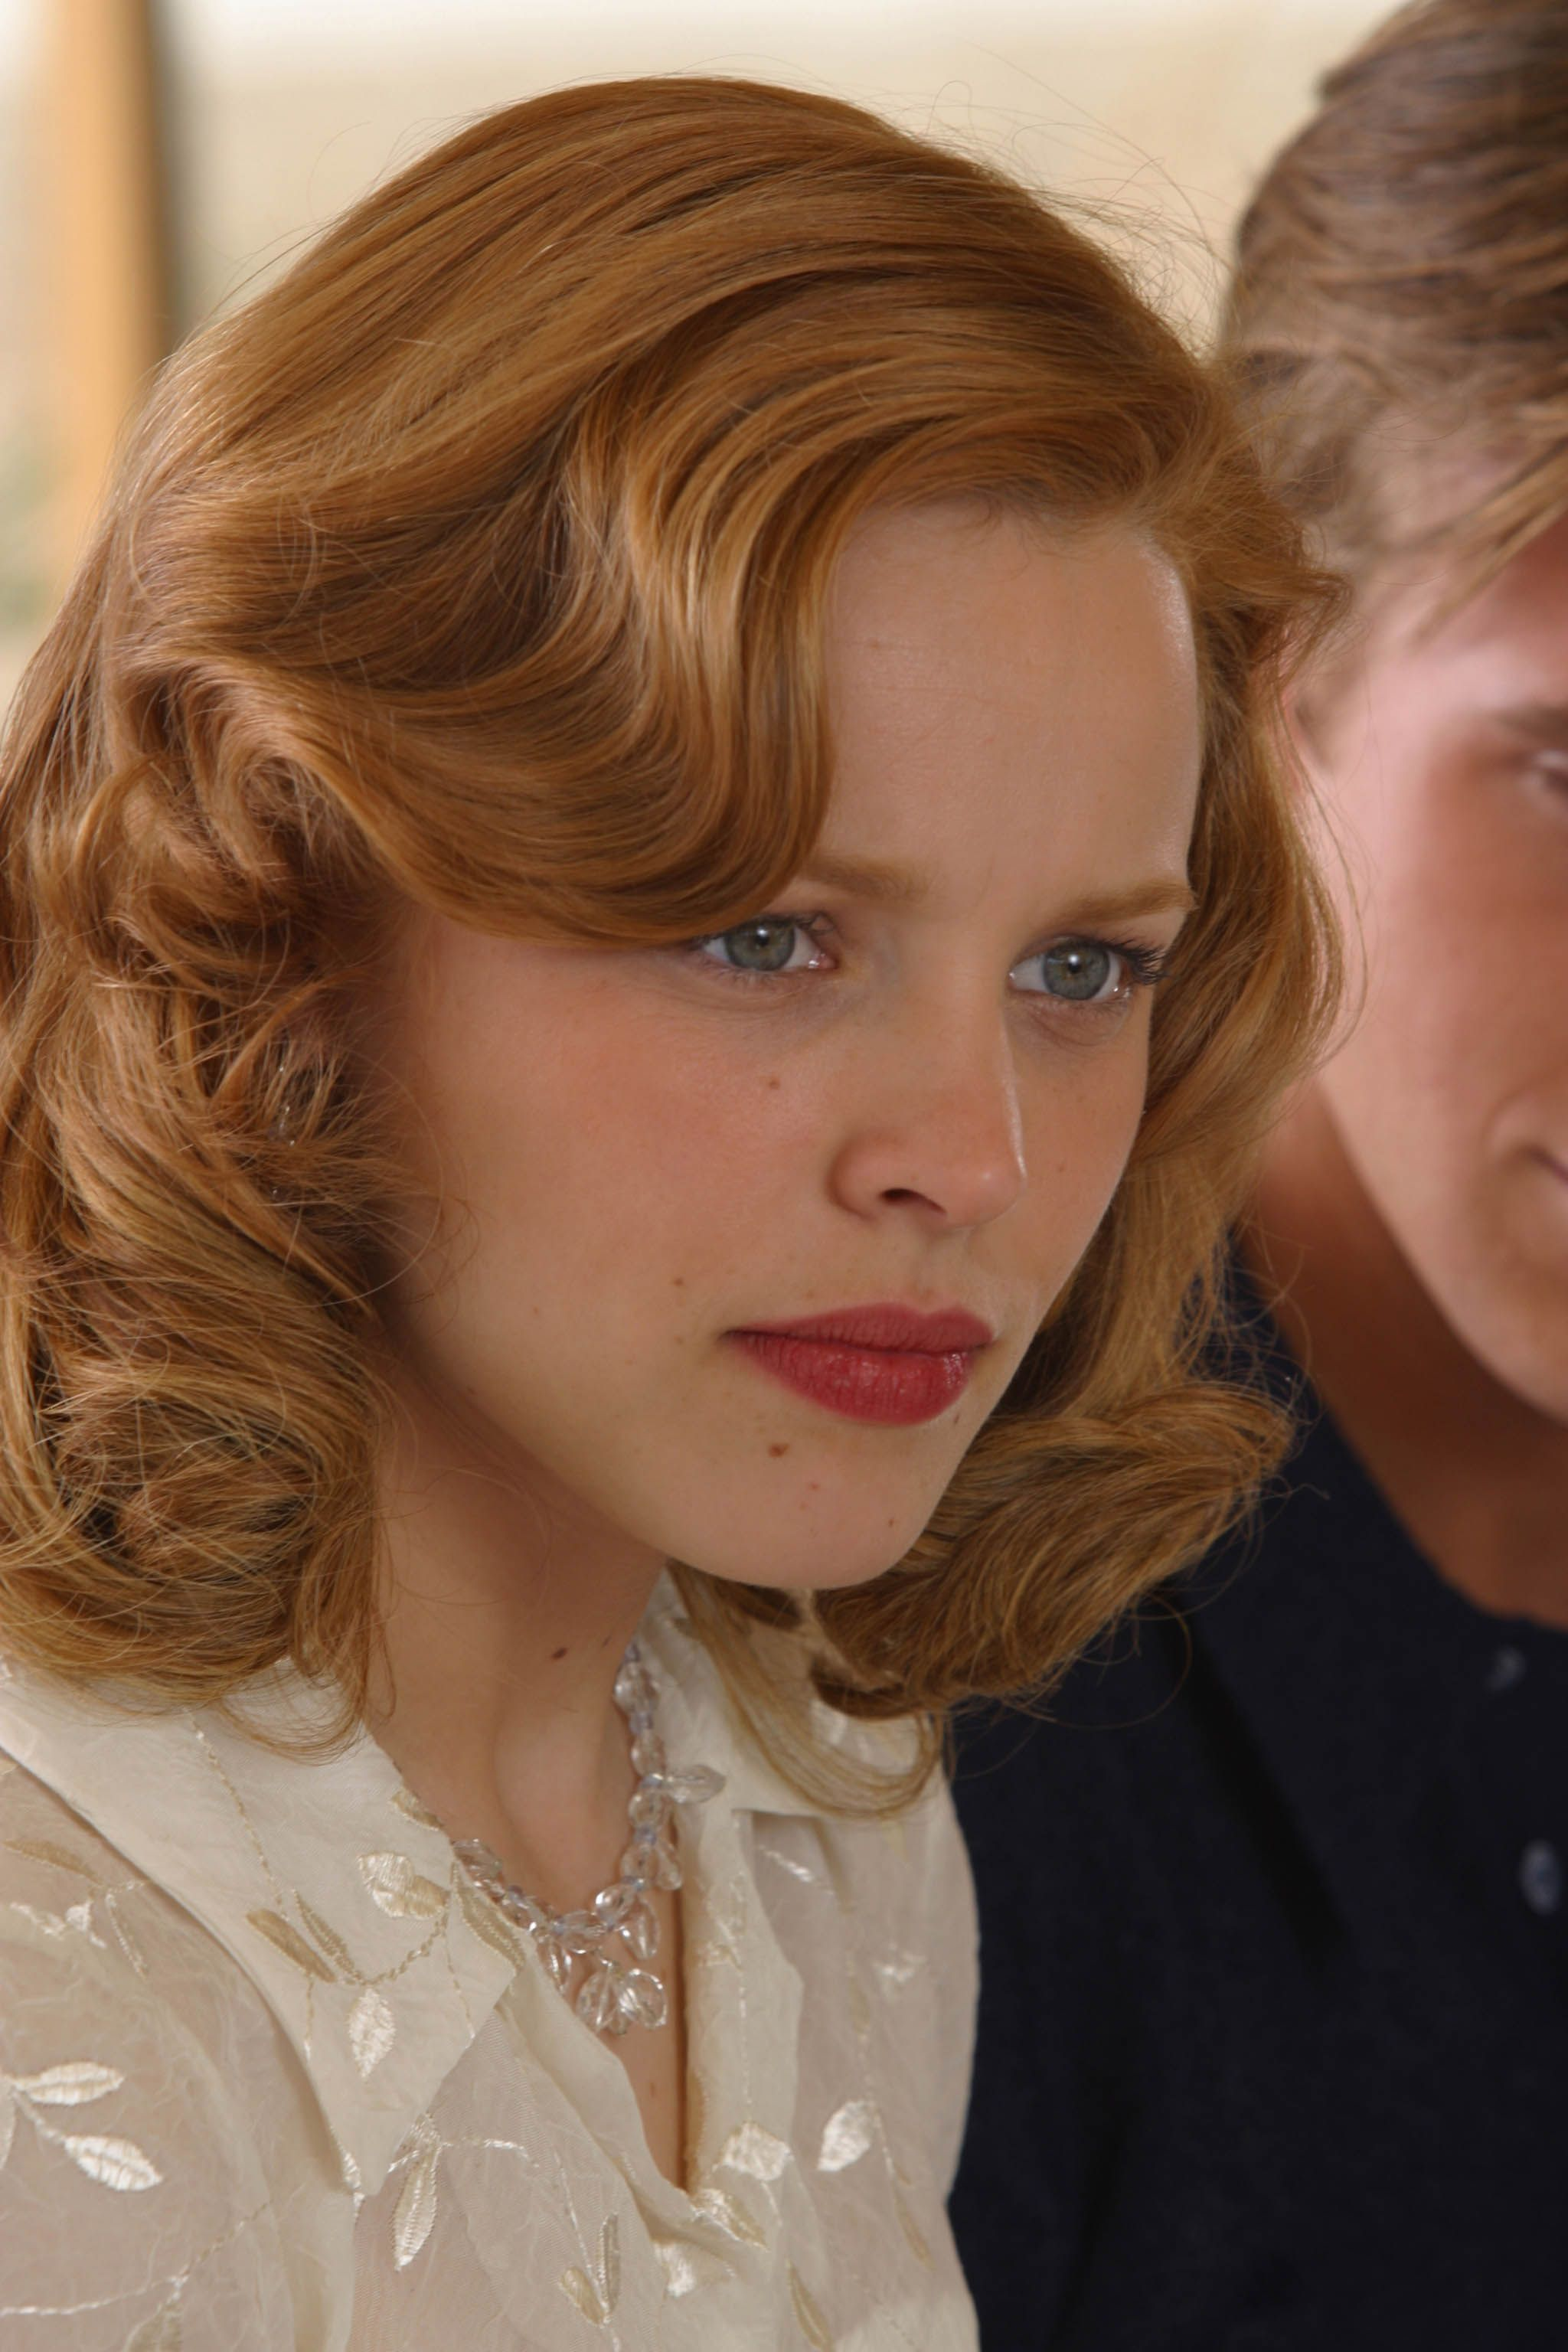 Awesome Hair Styles And Its Red Woo Hoo Rachel Mcadams In The